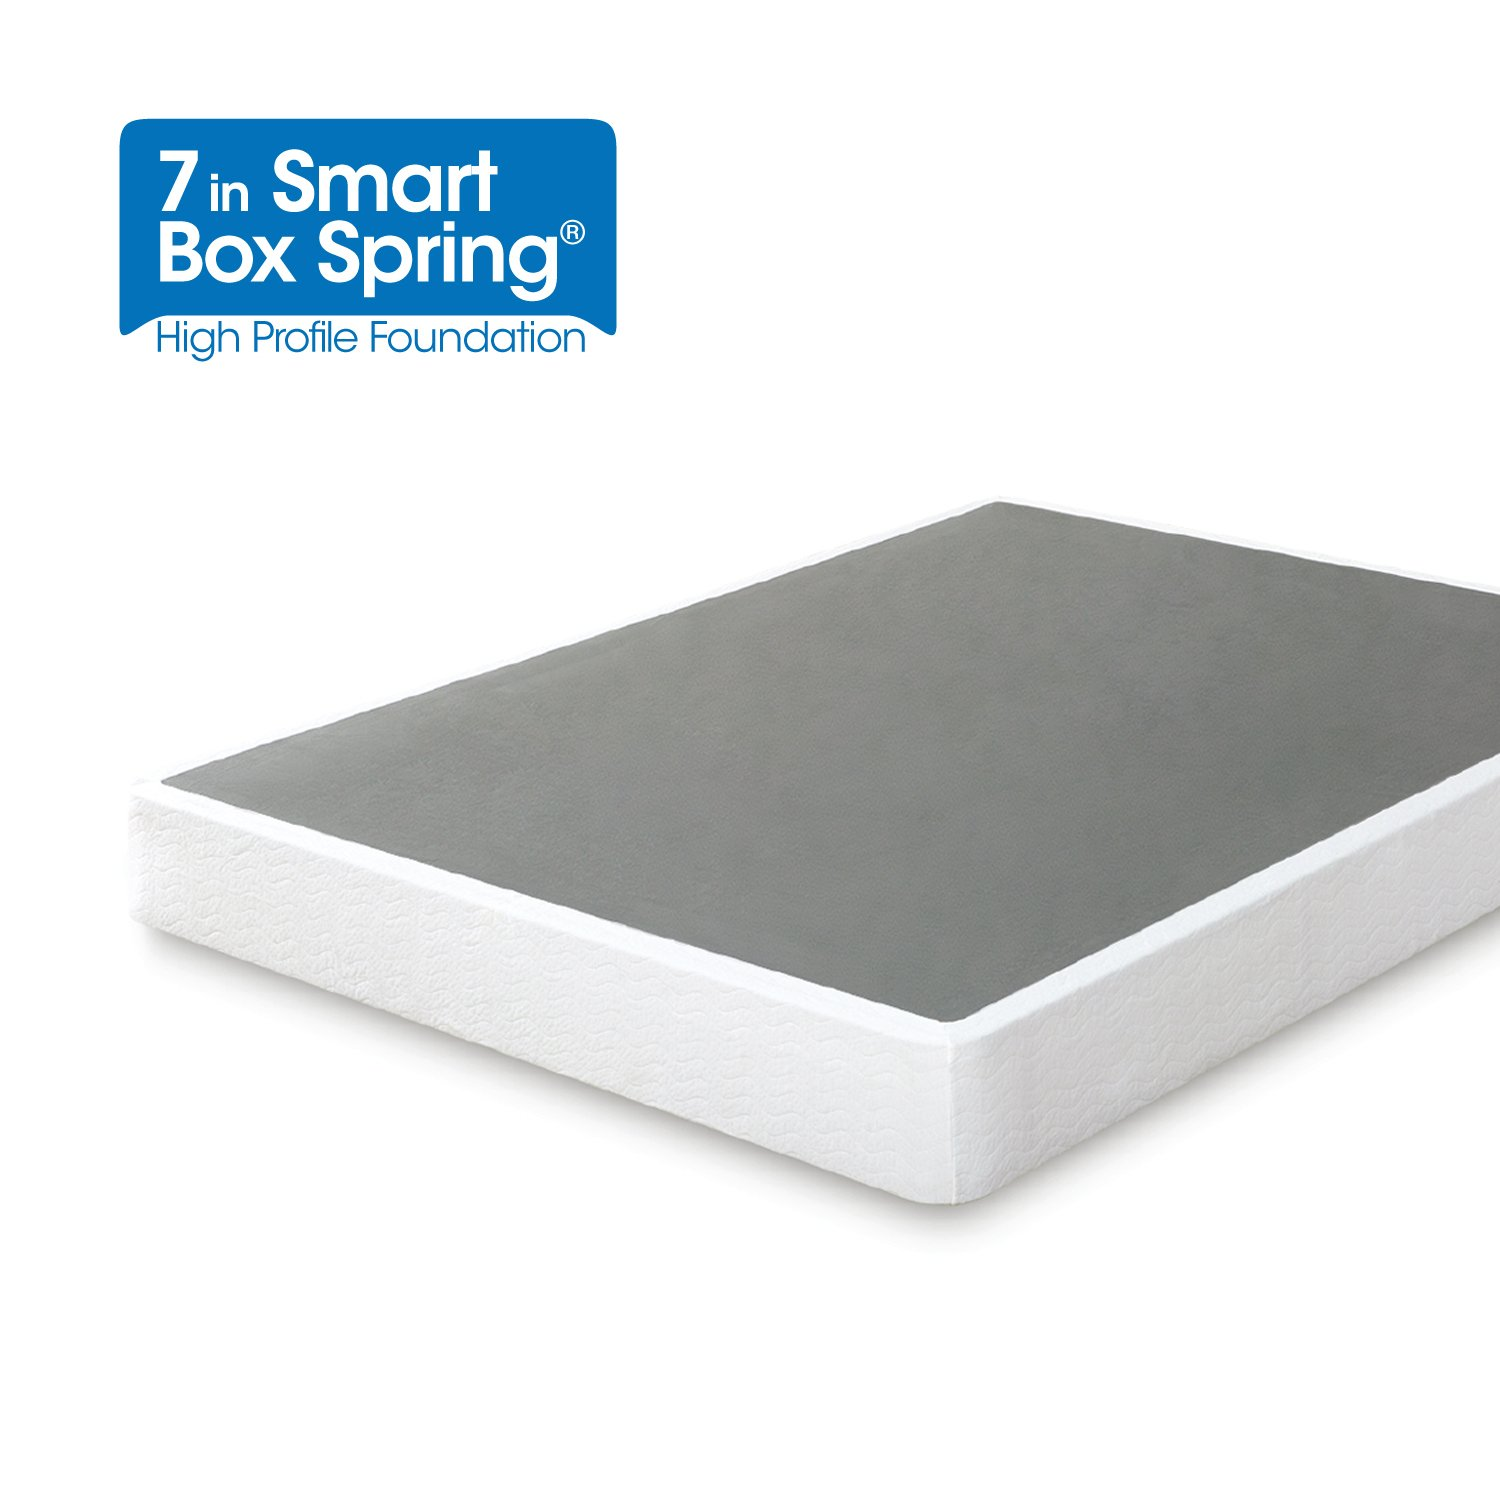 Zinus 7 Inch Smart Box Spring/Mattress Foundation/Strong Steel Structure/Easy Assembly Required, Full